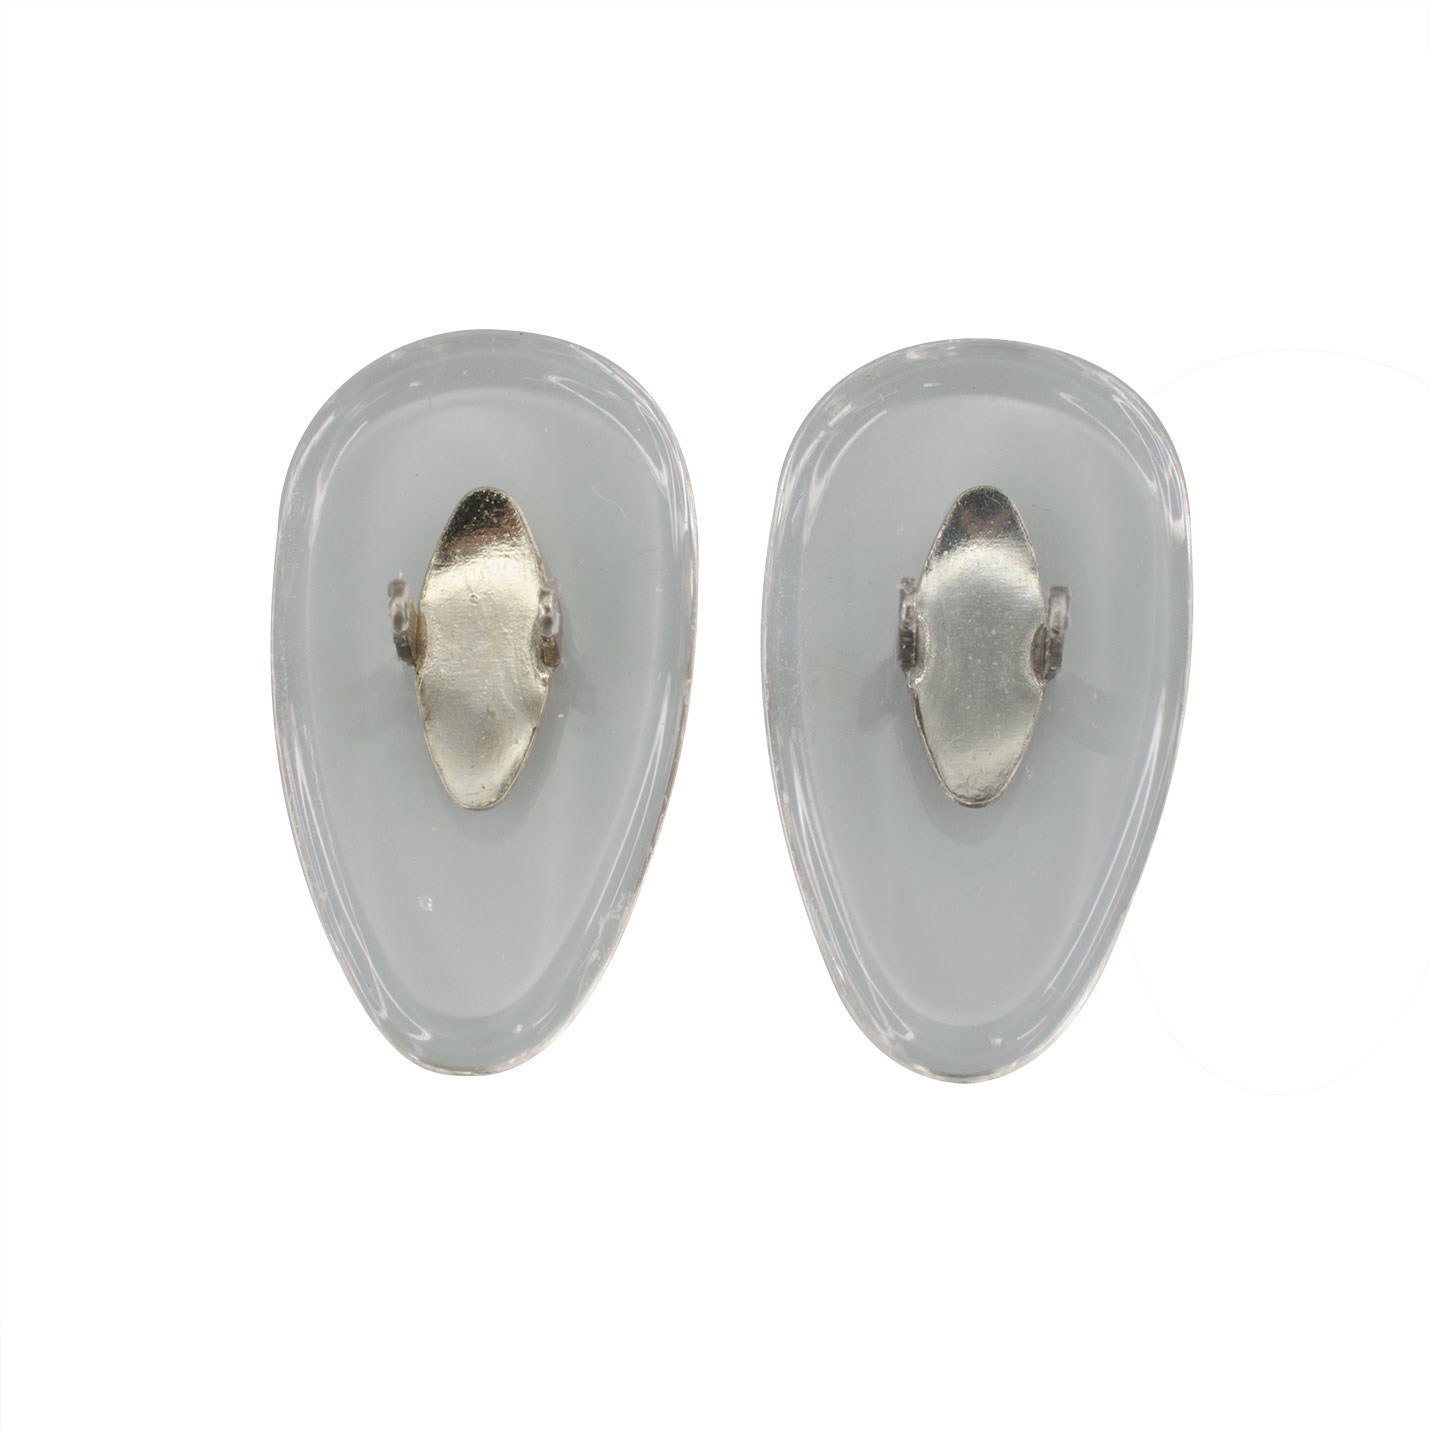 adab3511eb8 Crimp-On German Silicone Nose Pads - For B L frames